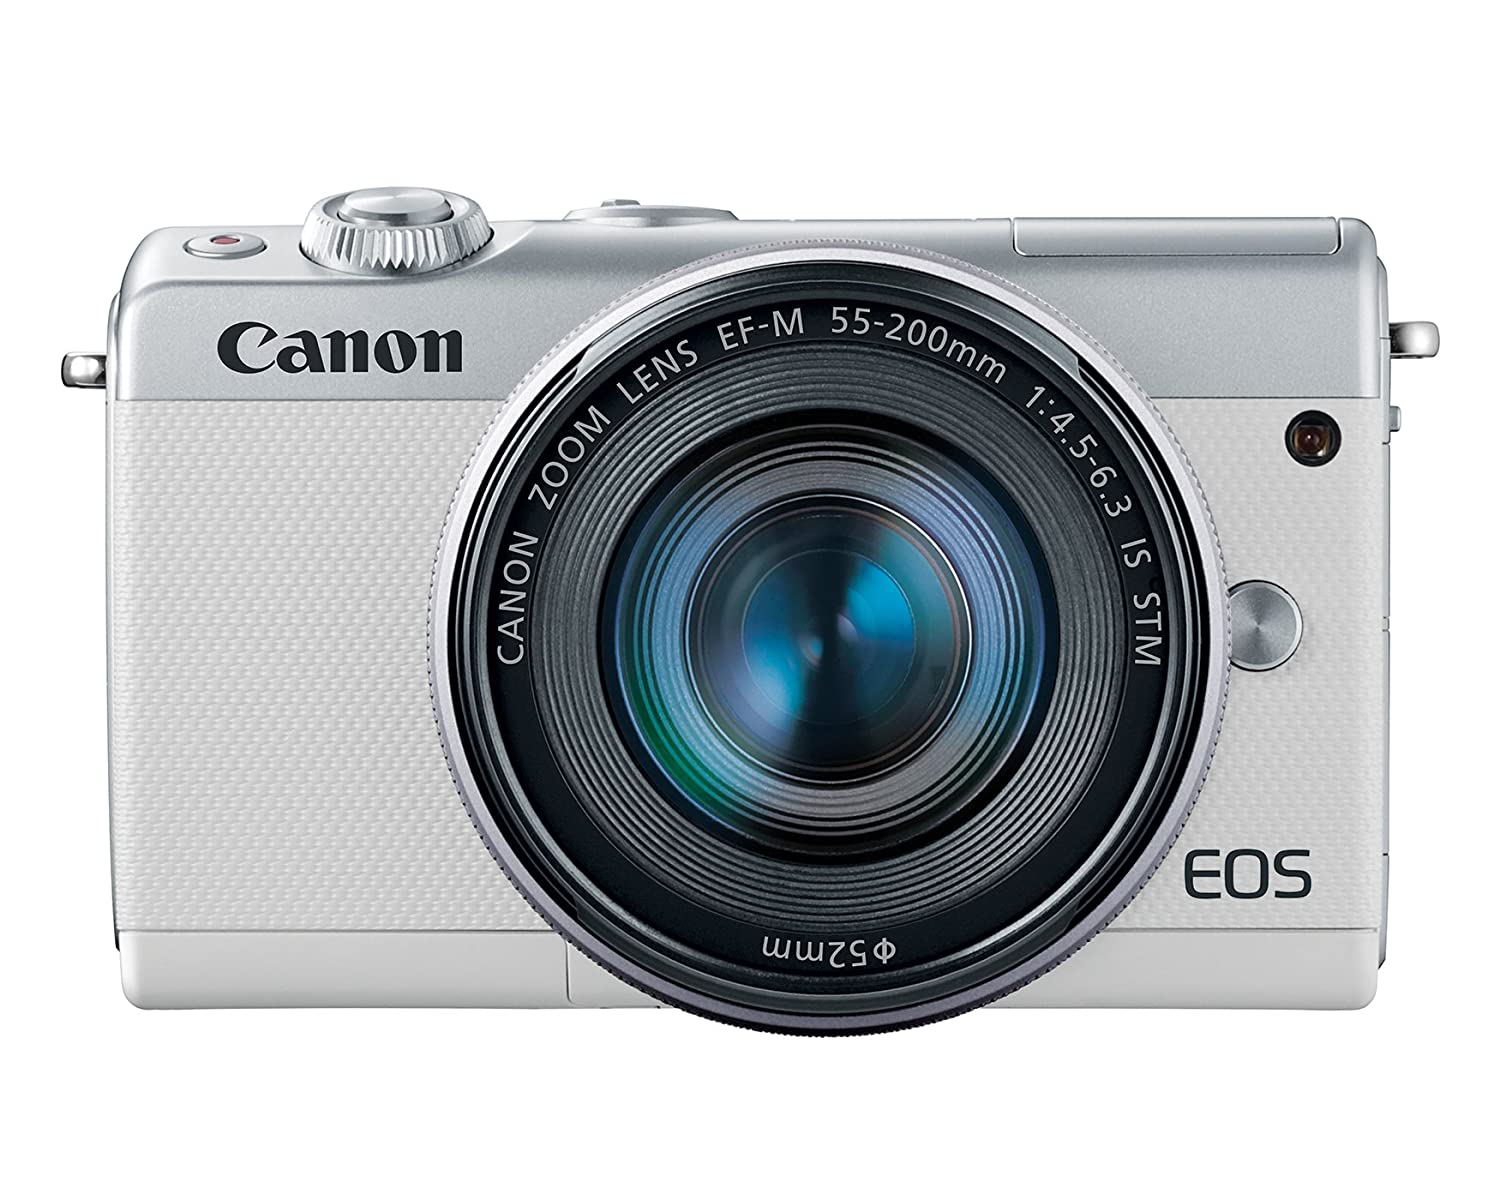 Canon EOS M100 - Digital camera - mirrorless - 24.2 MP - APS-C - 1080p / 60 fps - 3x optical zoom EF-M 15-45mm IS and 55-200mm lenses - Wi-Fi, NFC, Bluetooth - white   B074VNT4VQ